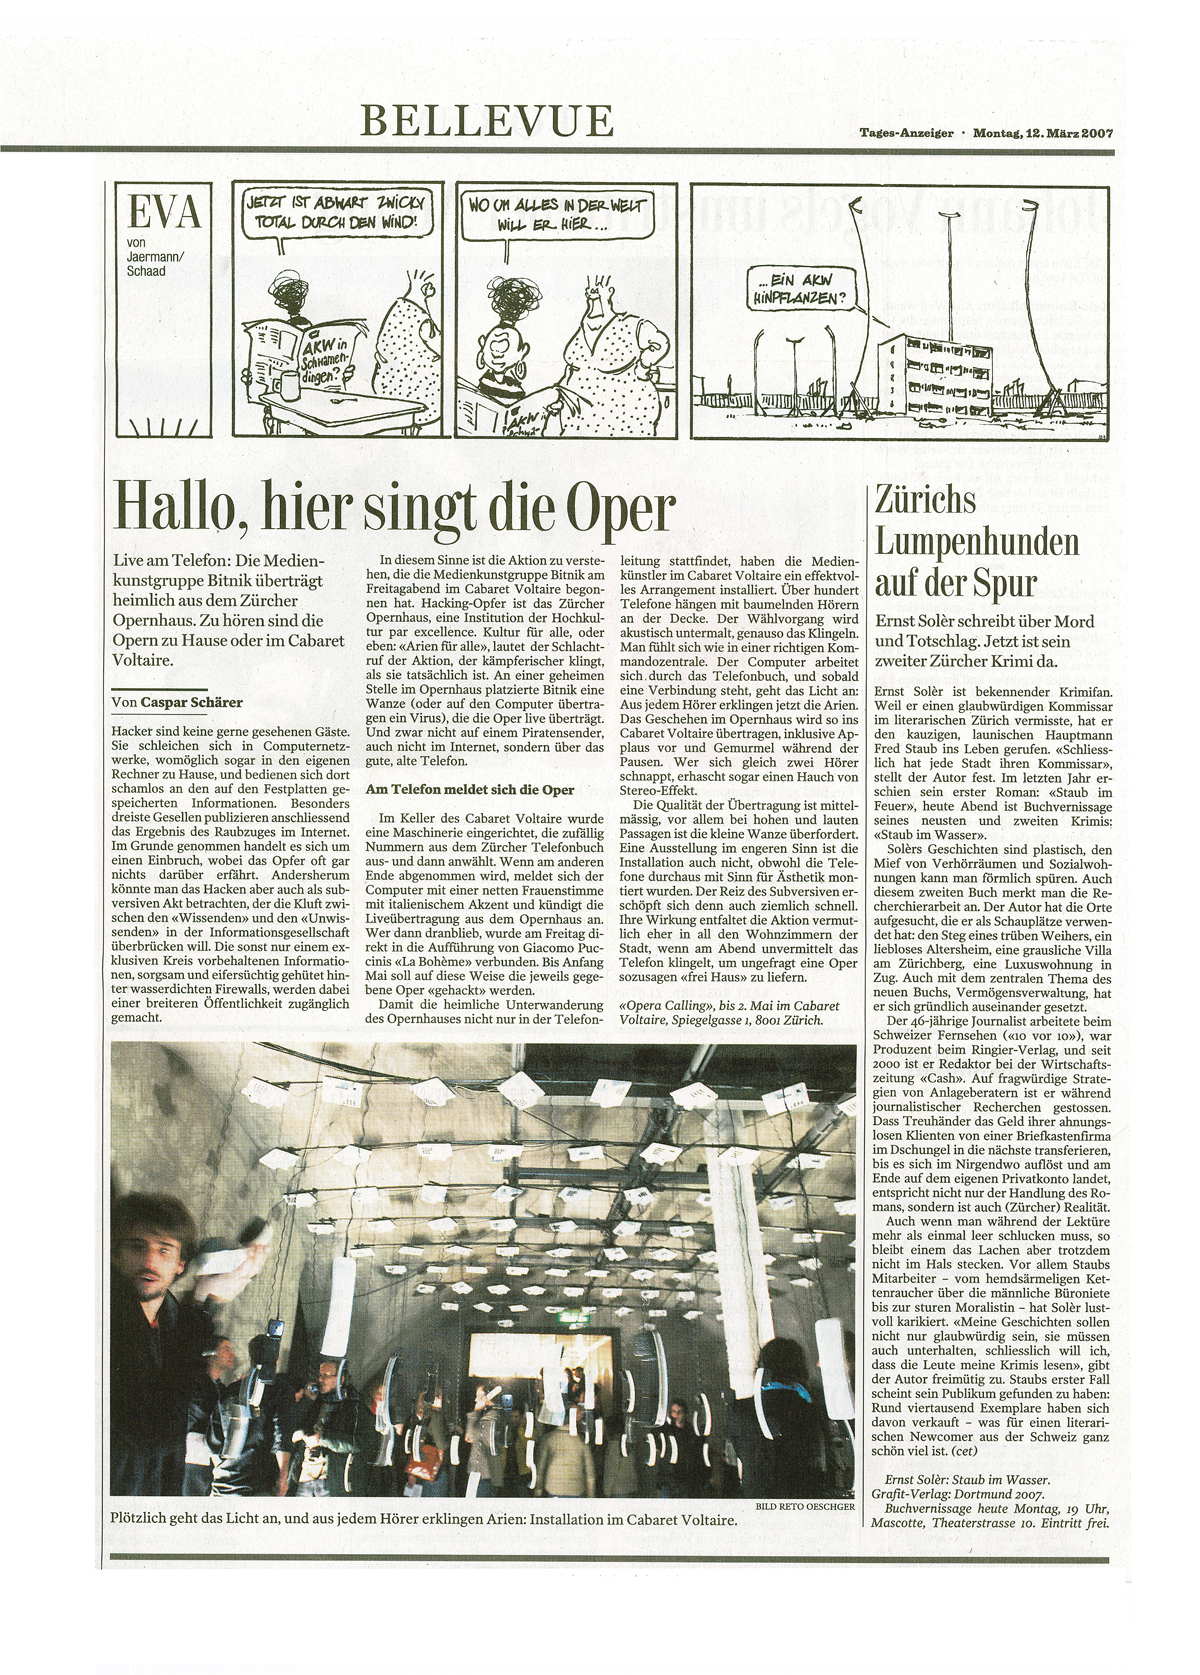 Scan of Tagesanzeiger Article on Opera Calling